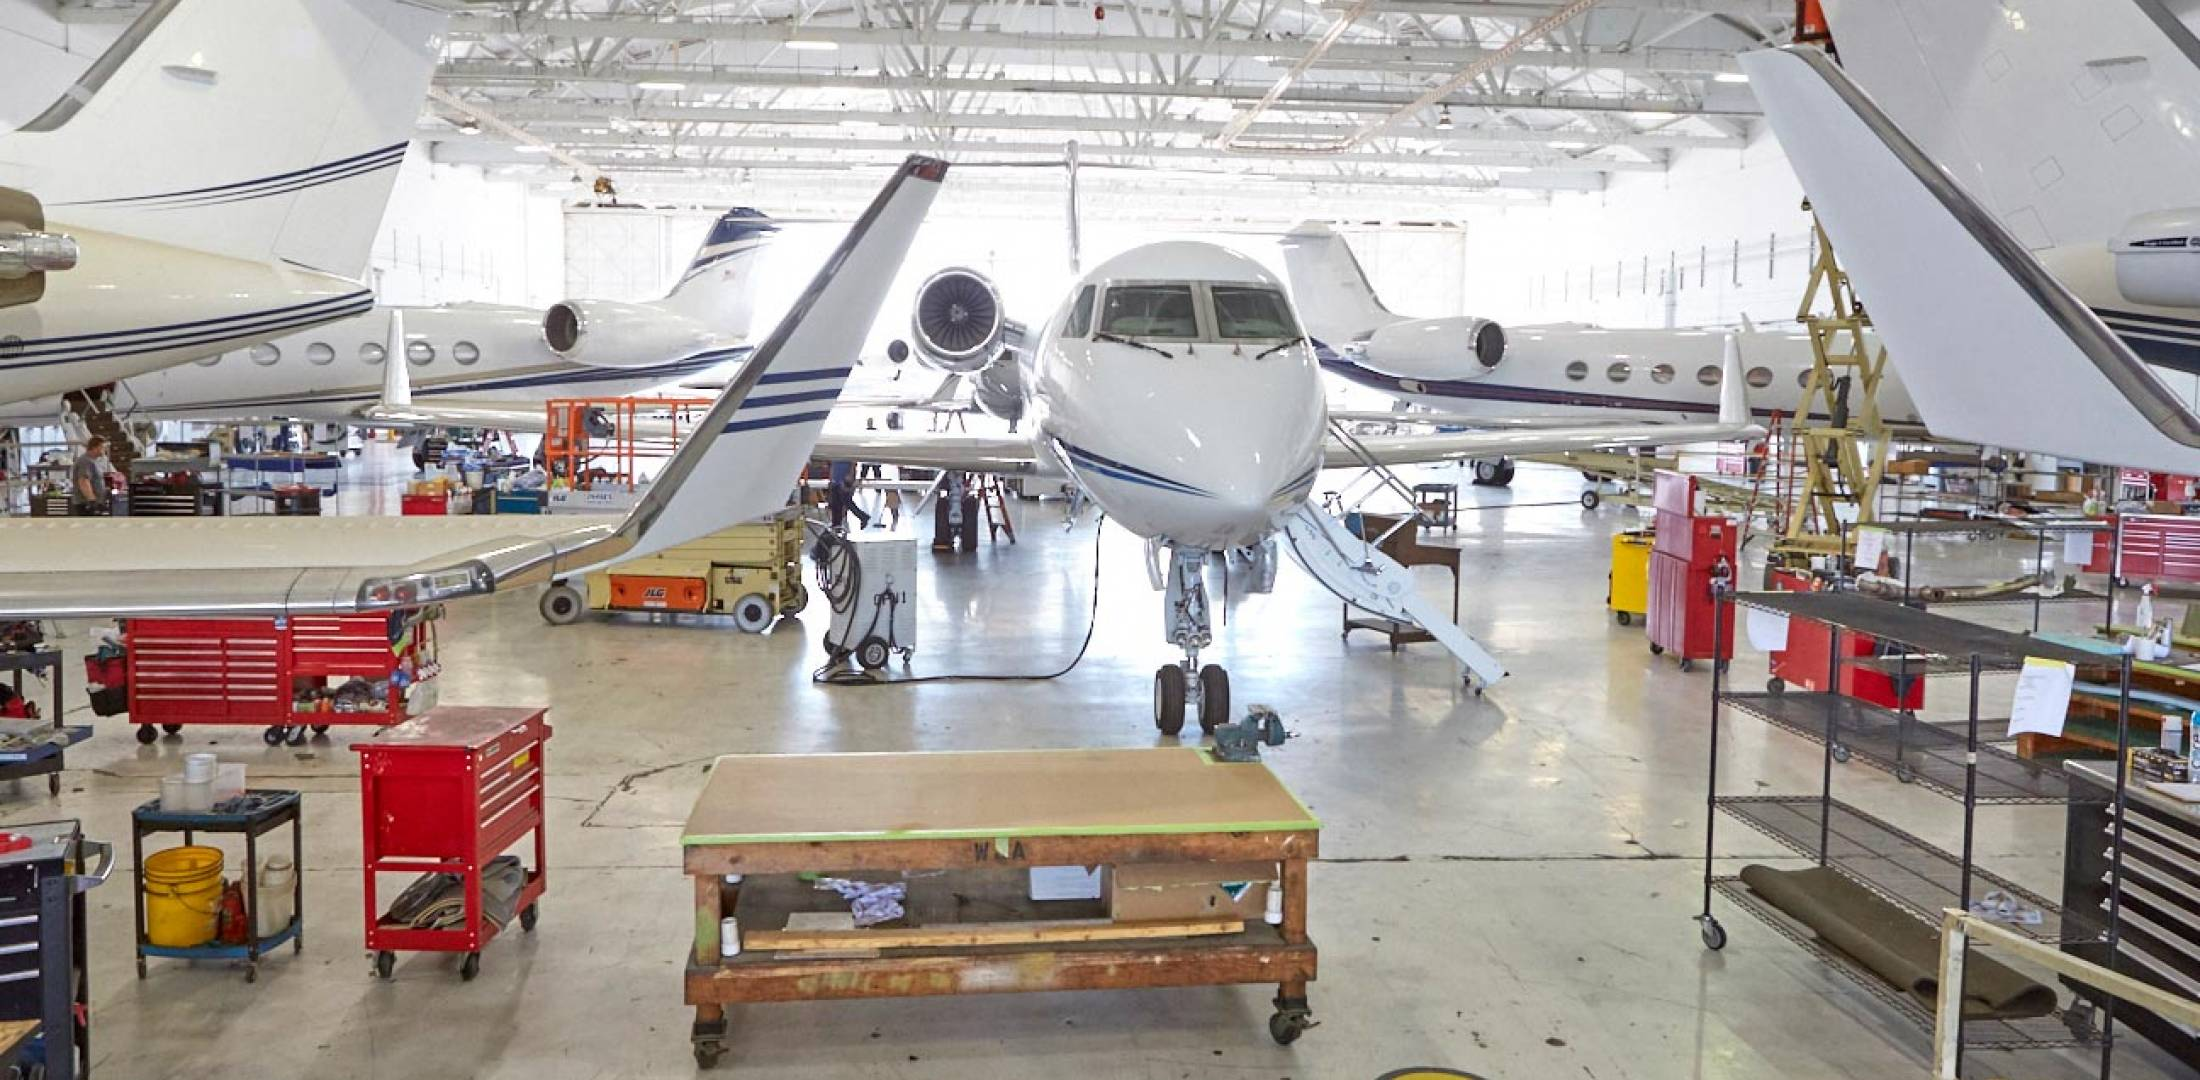 Tried and true, the vintage Western Jet hangar has been upgraded to current earthquake standards and airport codes. It's continually chock full of Gulfstreams, and together with tenant companies such as interior specialist JetSet, Western Jet is eying a busy market.